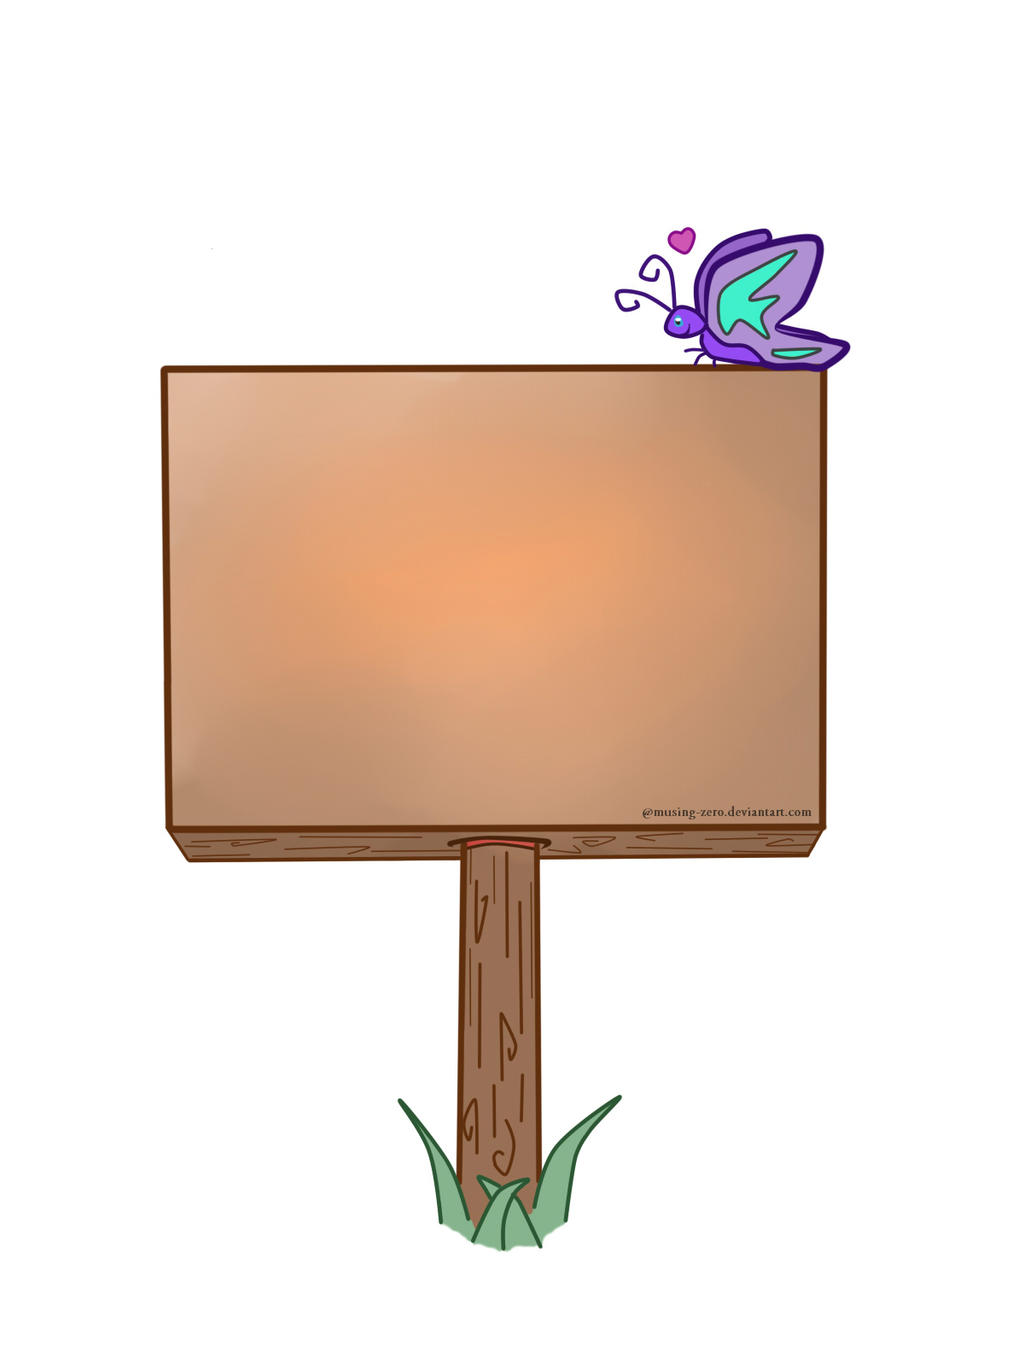 Sign Board by Musing-Zero